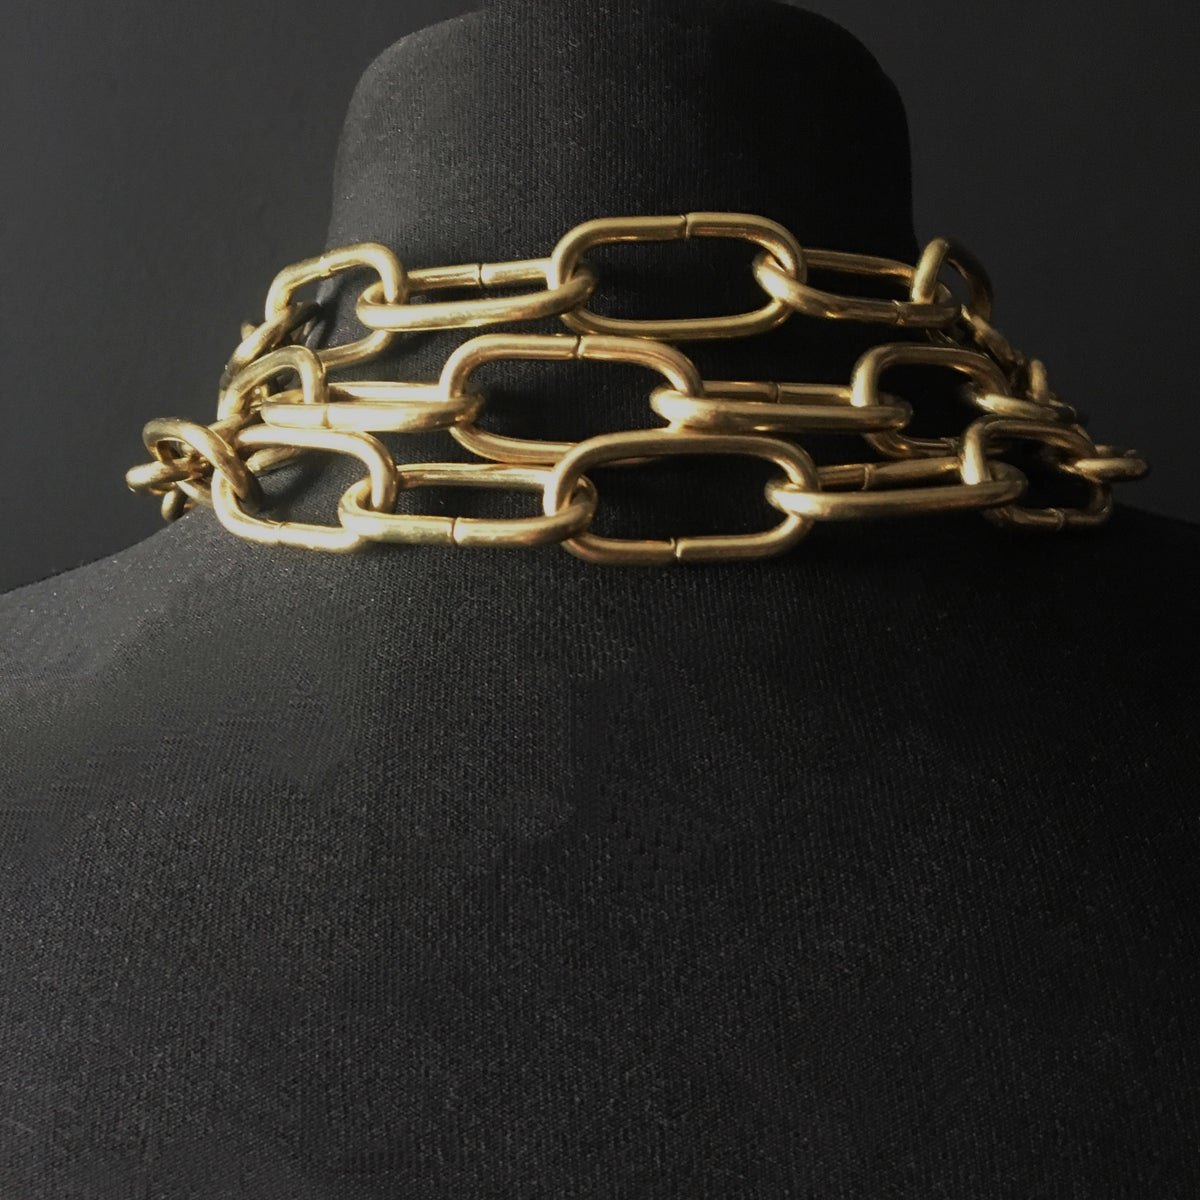 Gold triple chain ring necklace